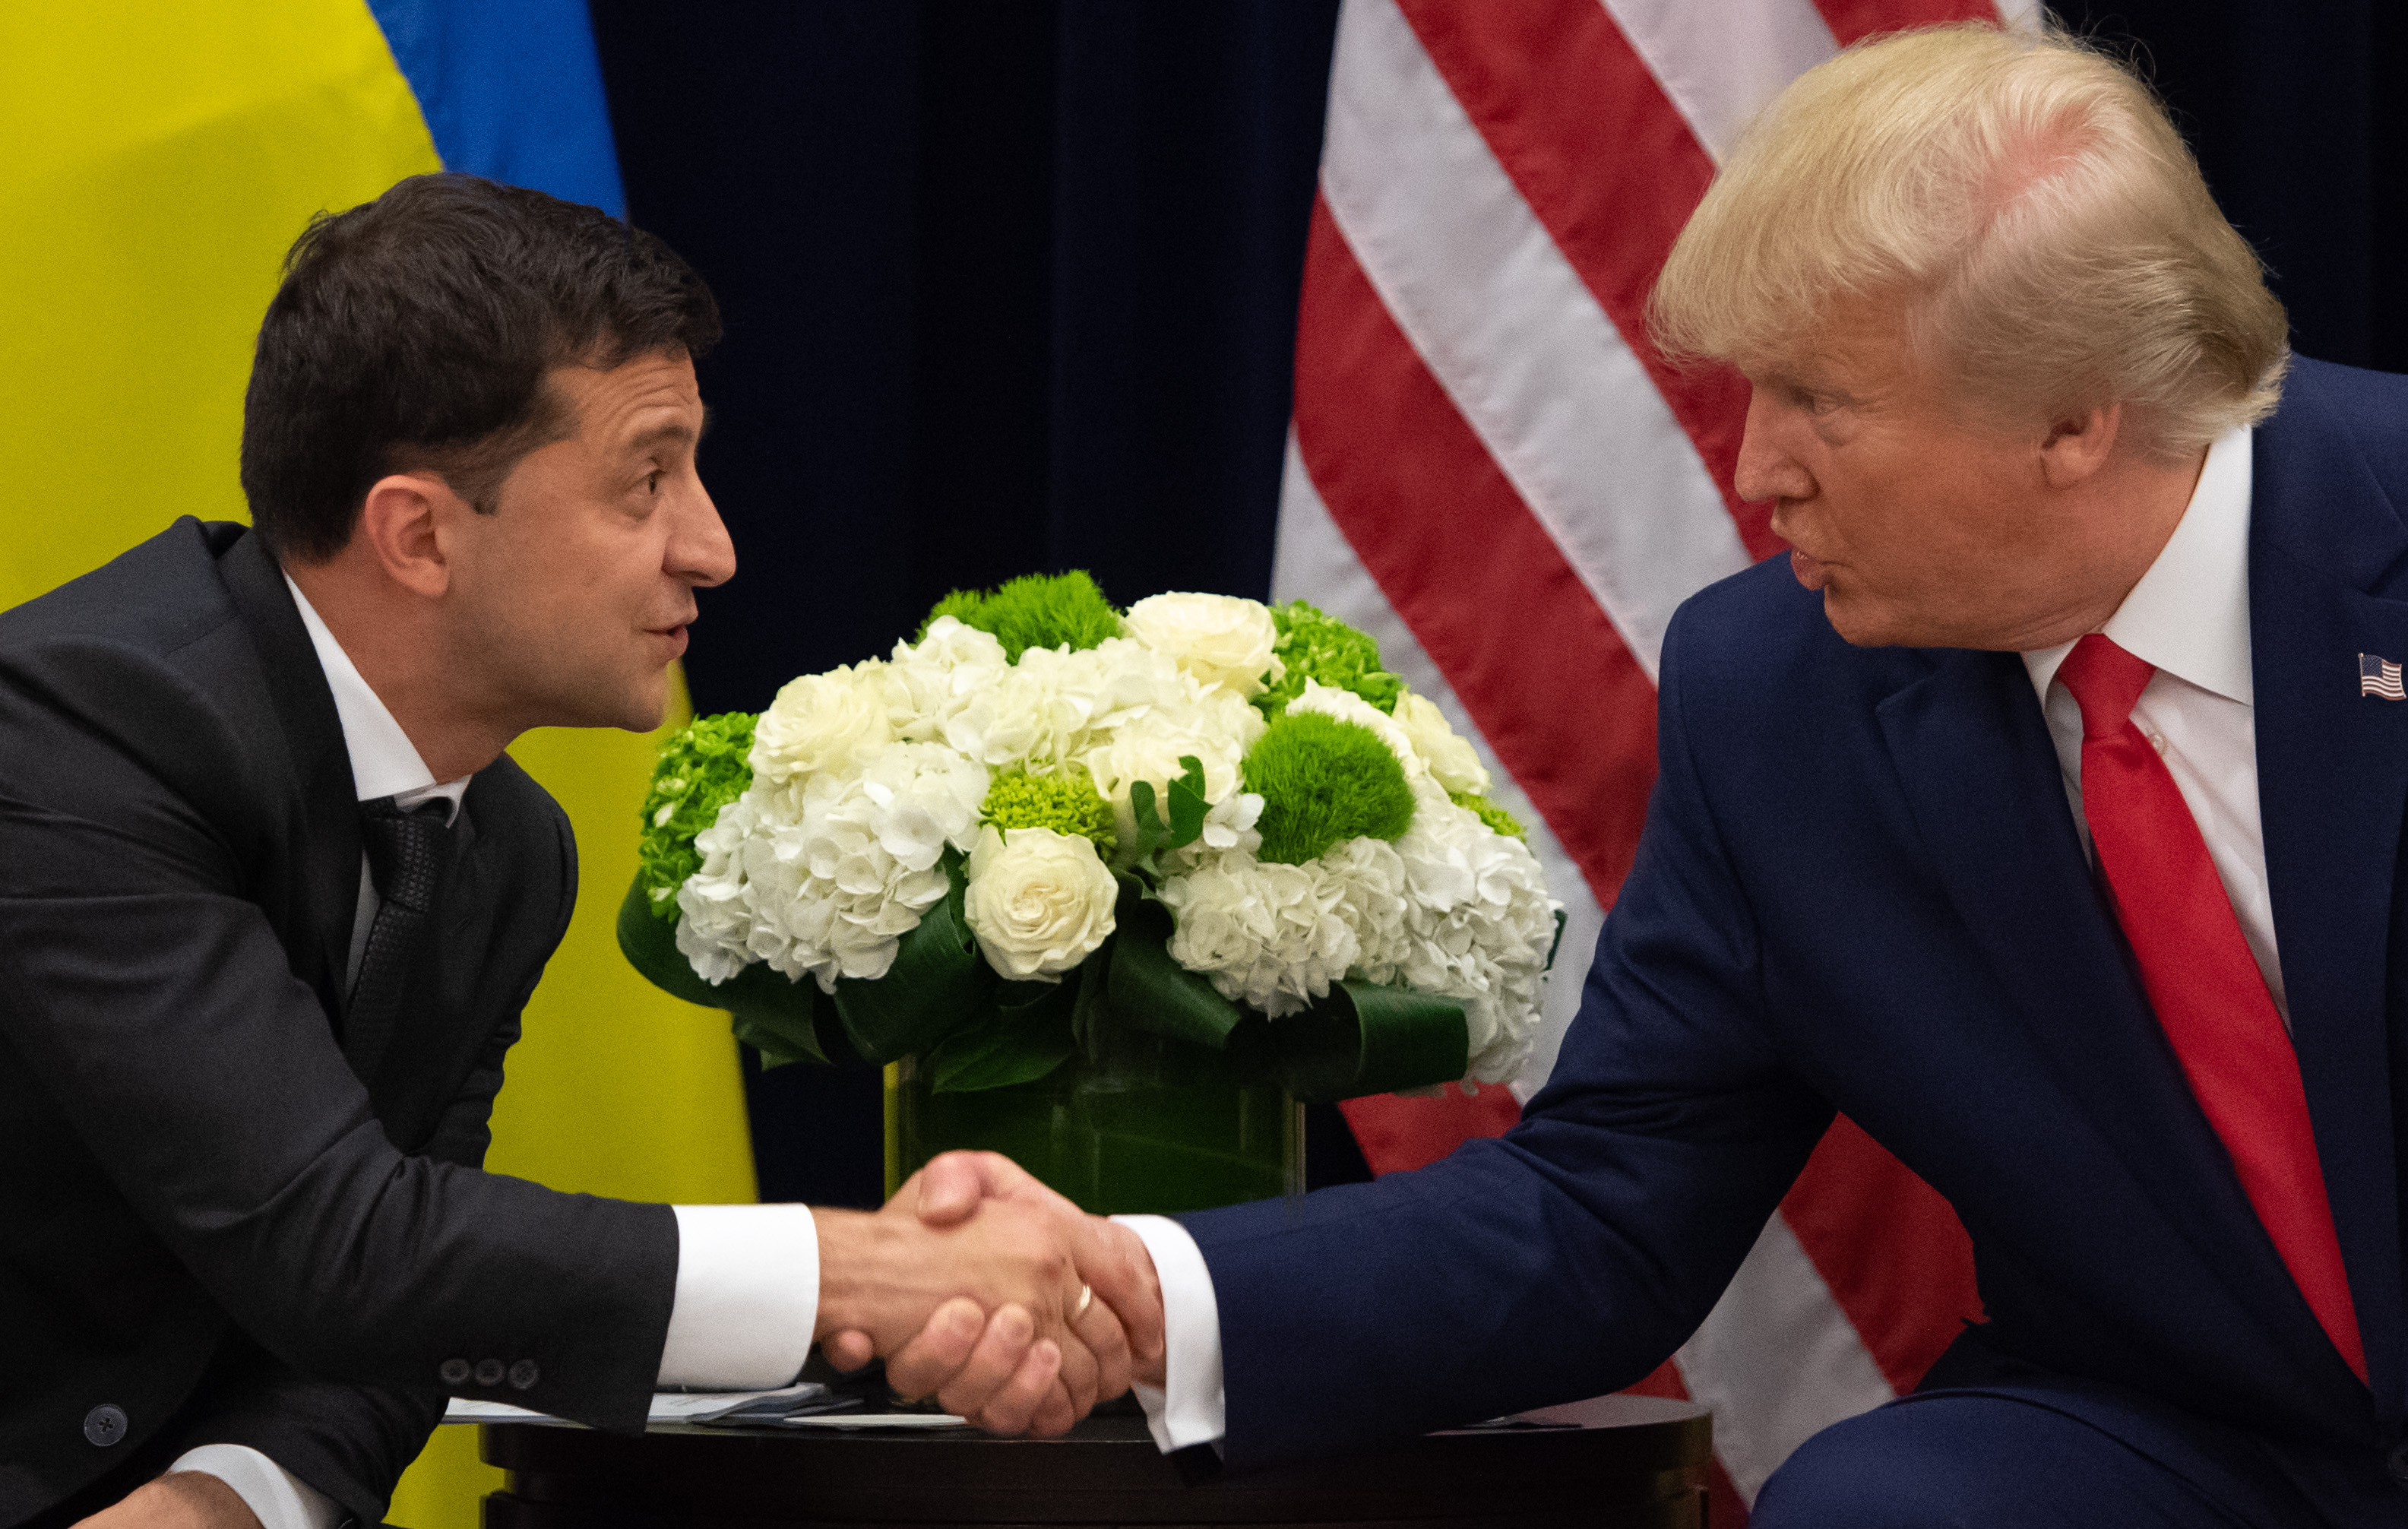 TOPSHOT - US President Donald Trump and Ukrainian President Volodymyr Zelensky shake hands during a meeting in New York on September 25, 2019, on the sidelines of the United Nations General Assembly. (Photo by SAUL LOEB/AFP/Getty Images)